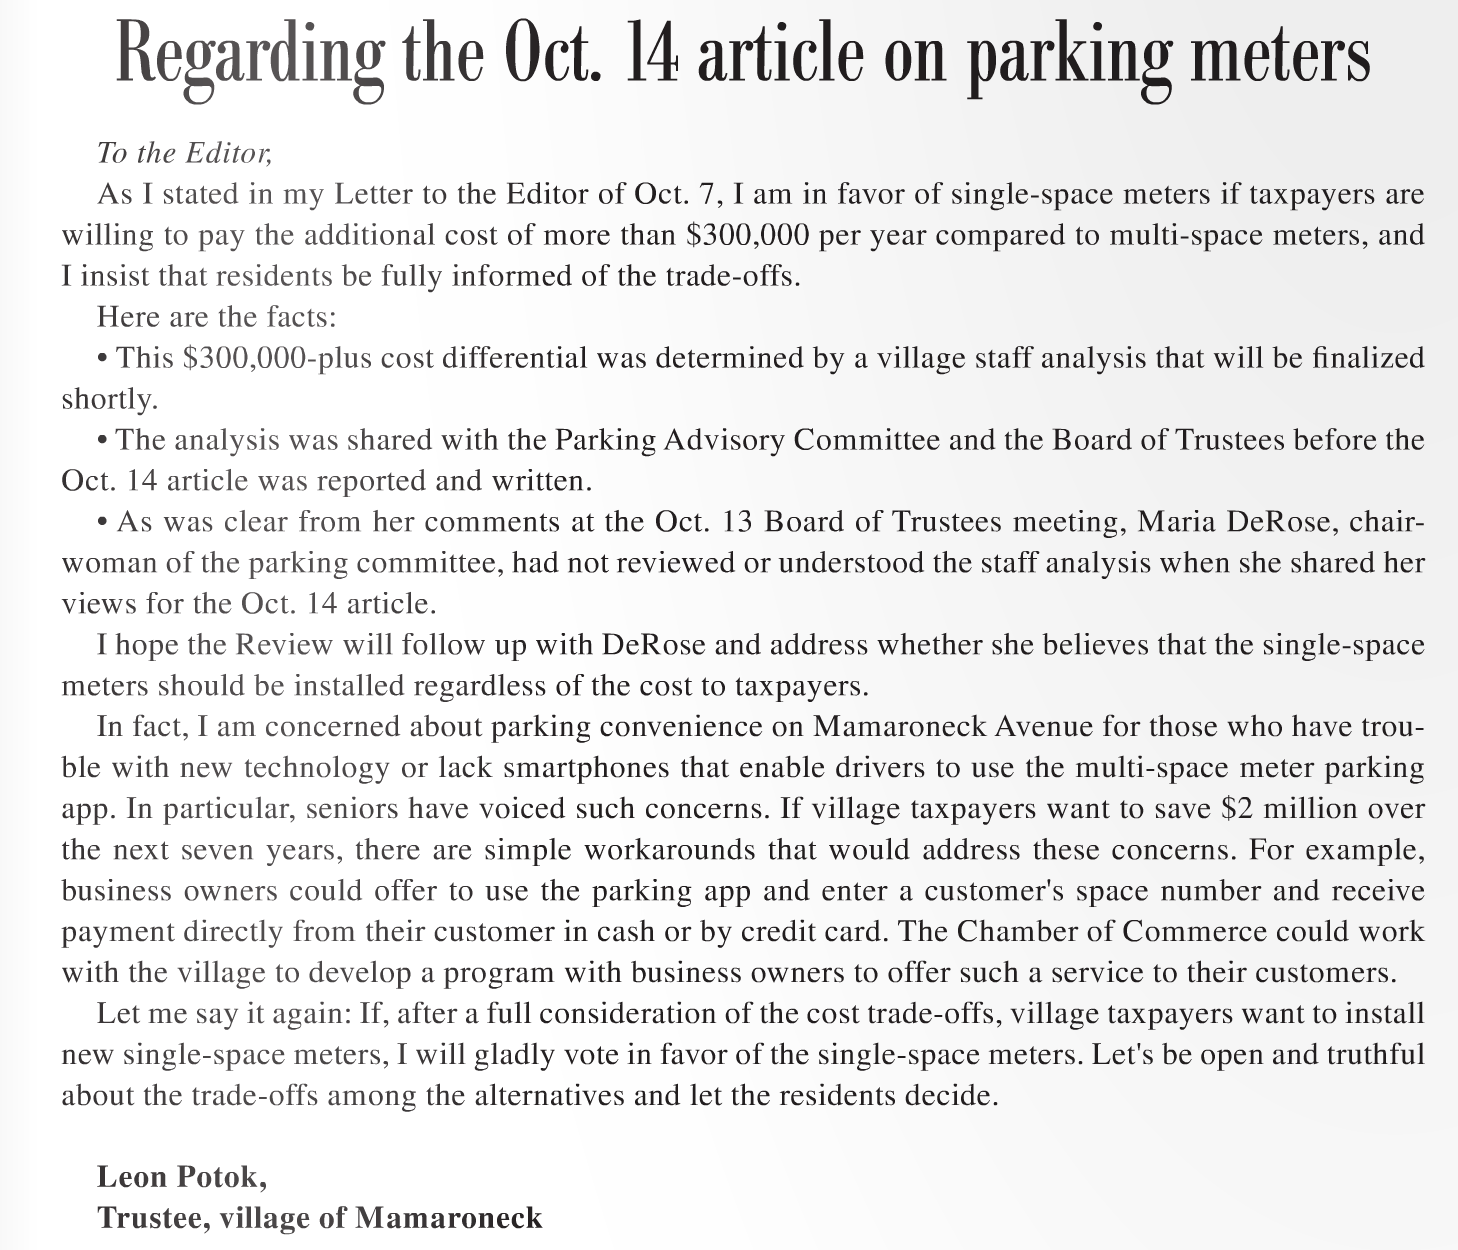 MR_Potok_Letter_to_the_Editor_102116.png